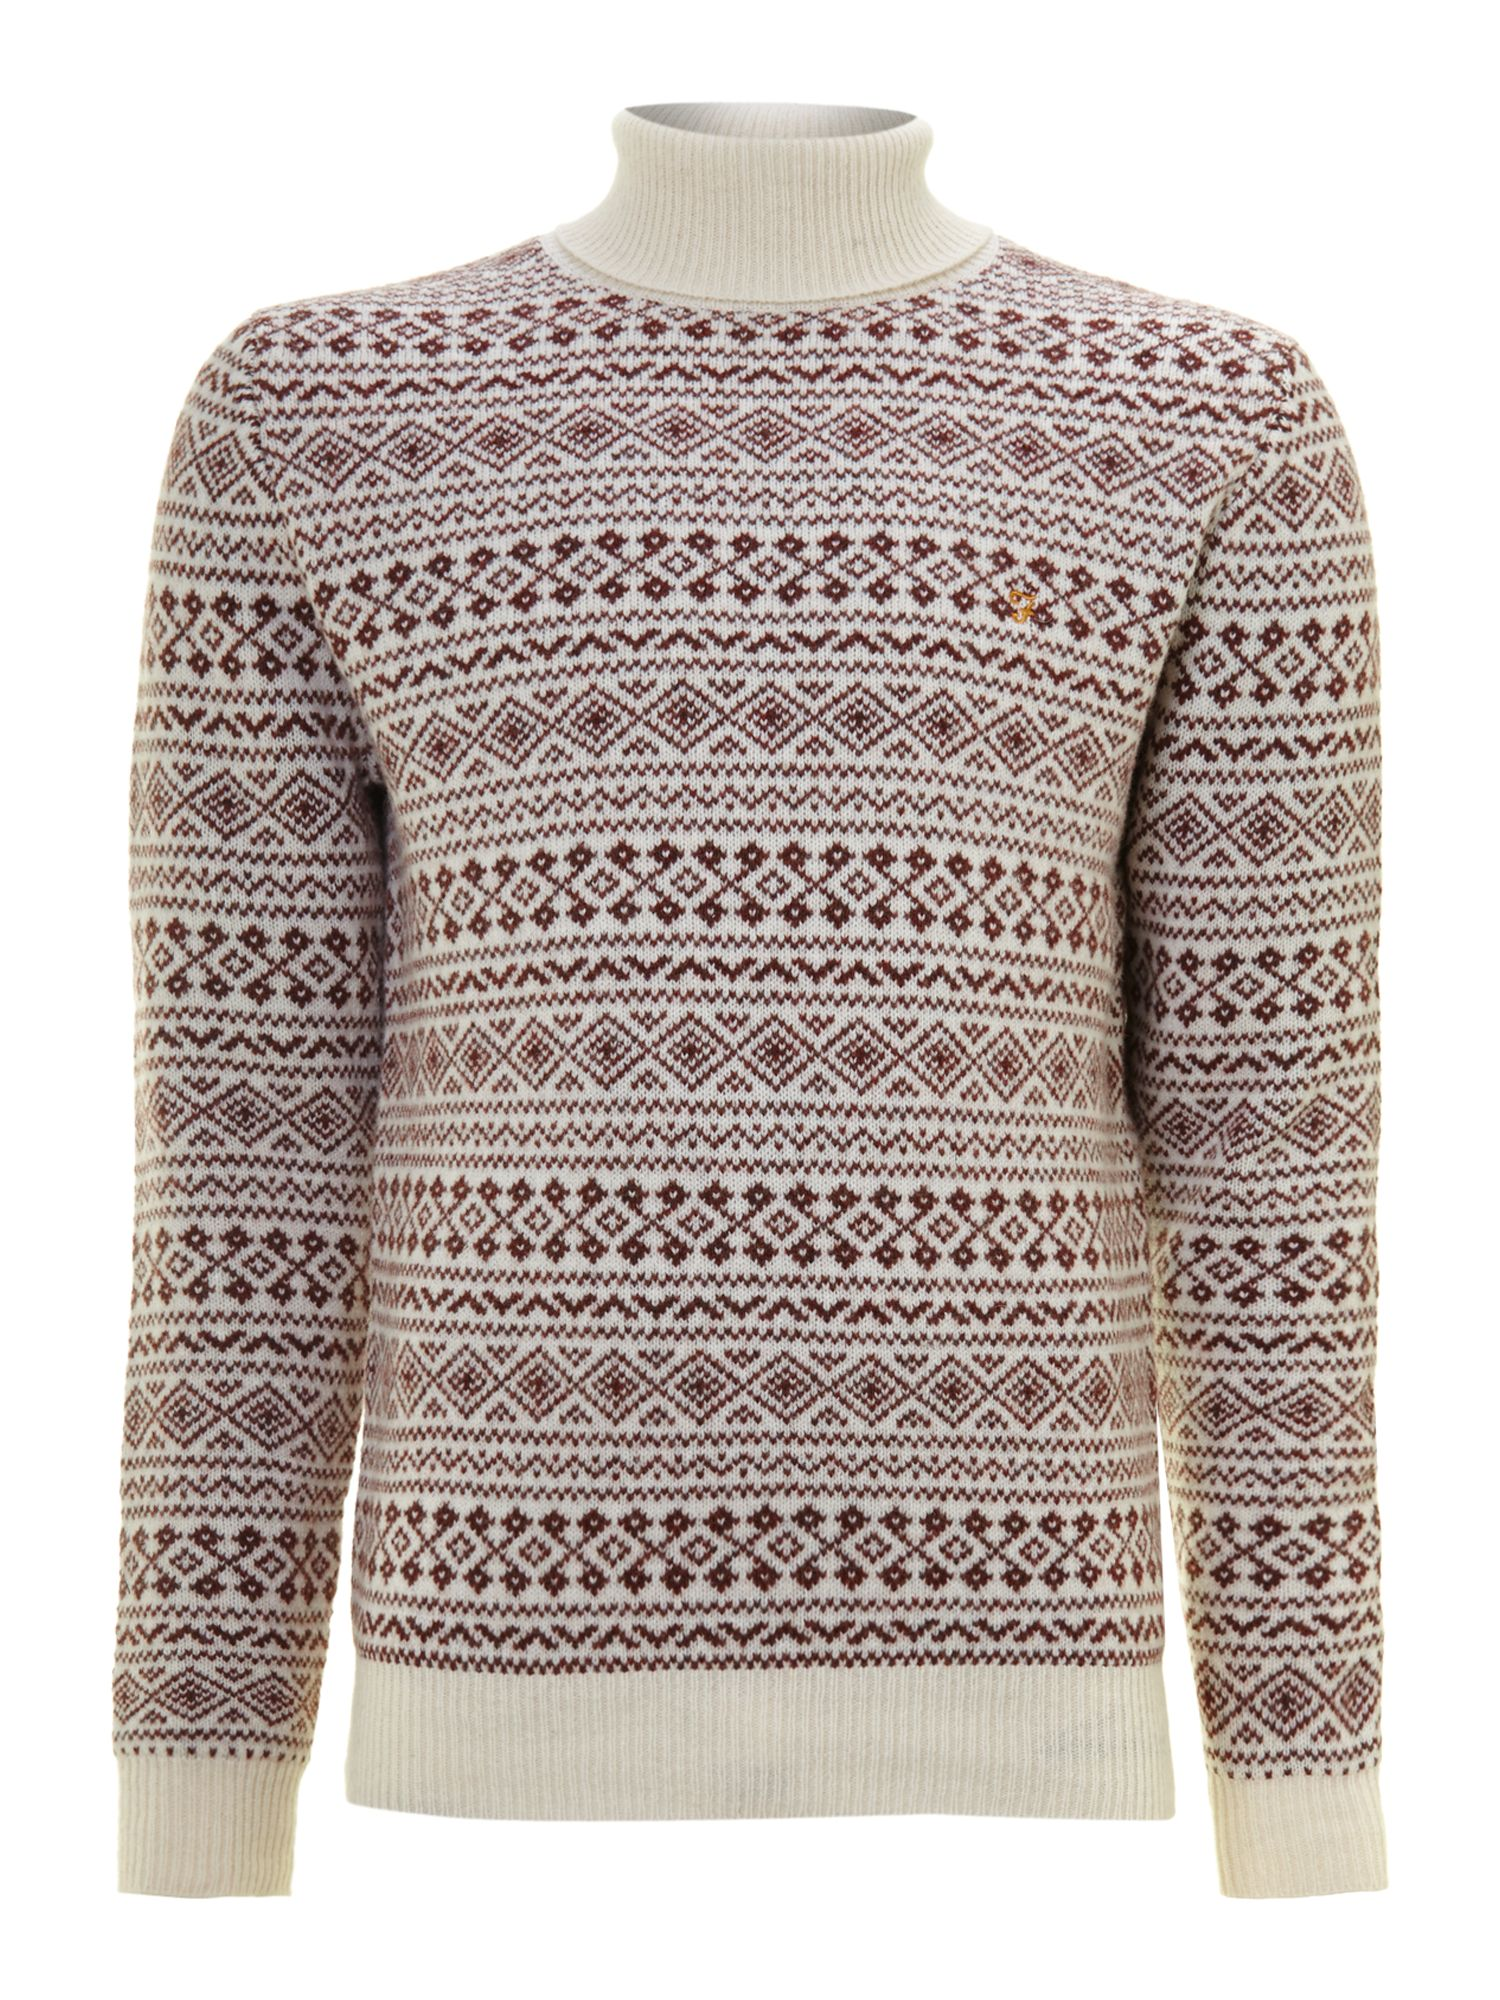 Hereford roll neck knit